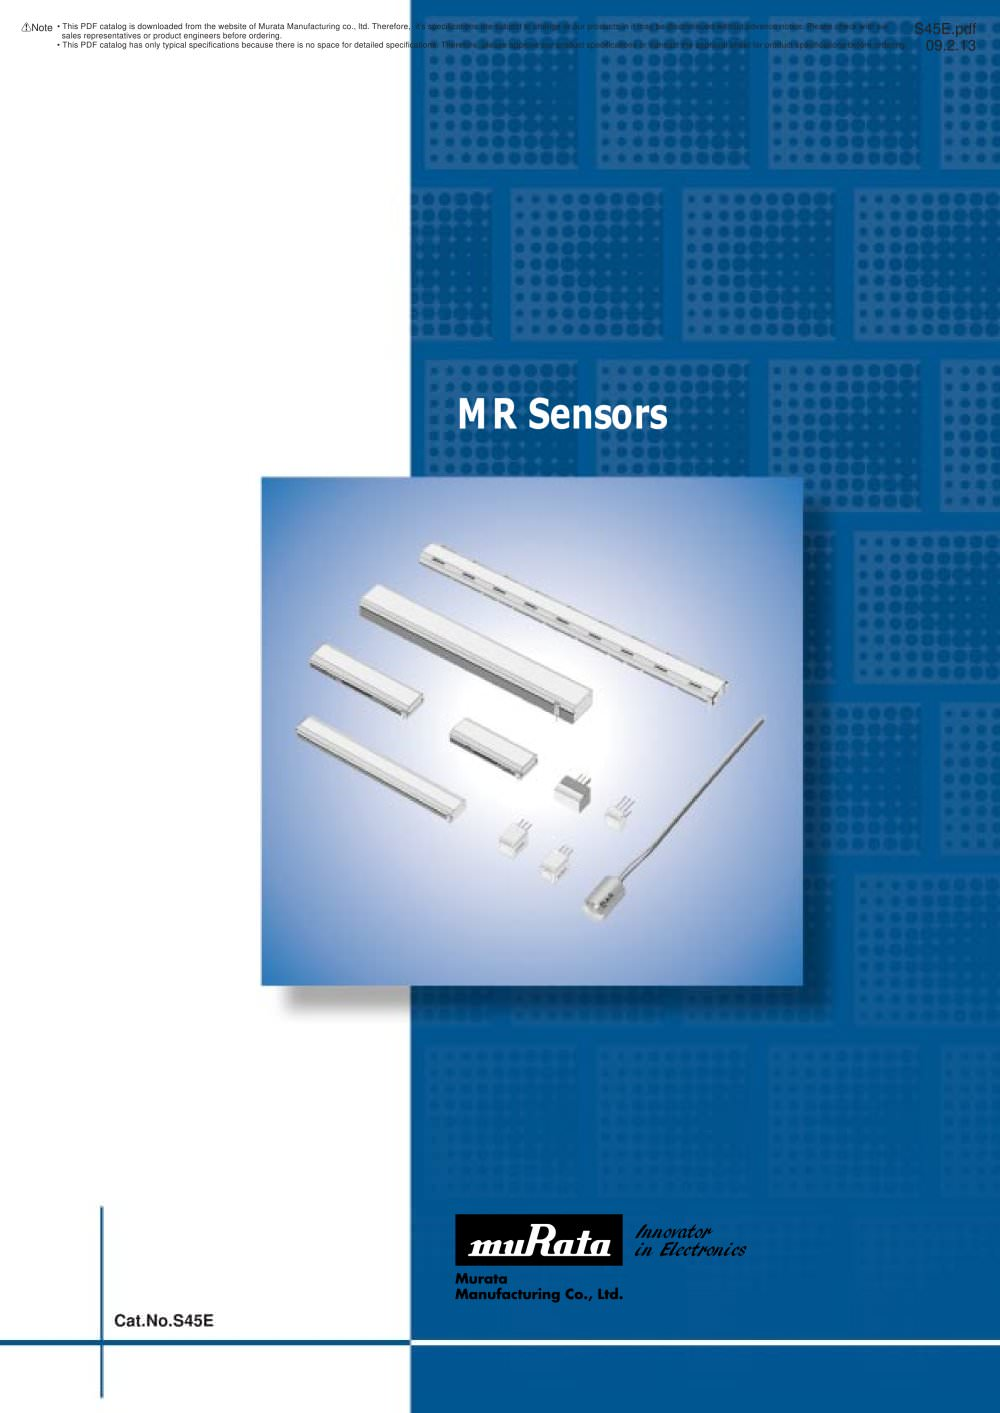 MR Sensors (Magnetic Pattern Recognition Sensors/Rotary Sensors ...